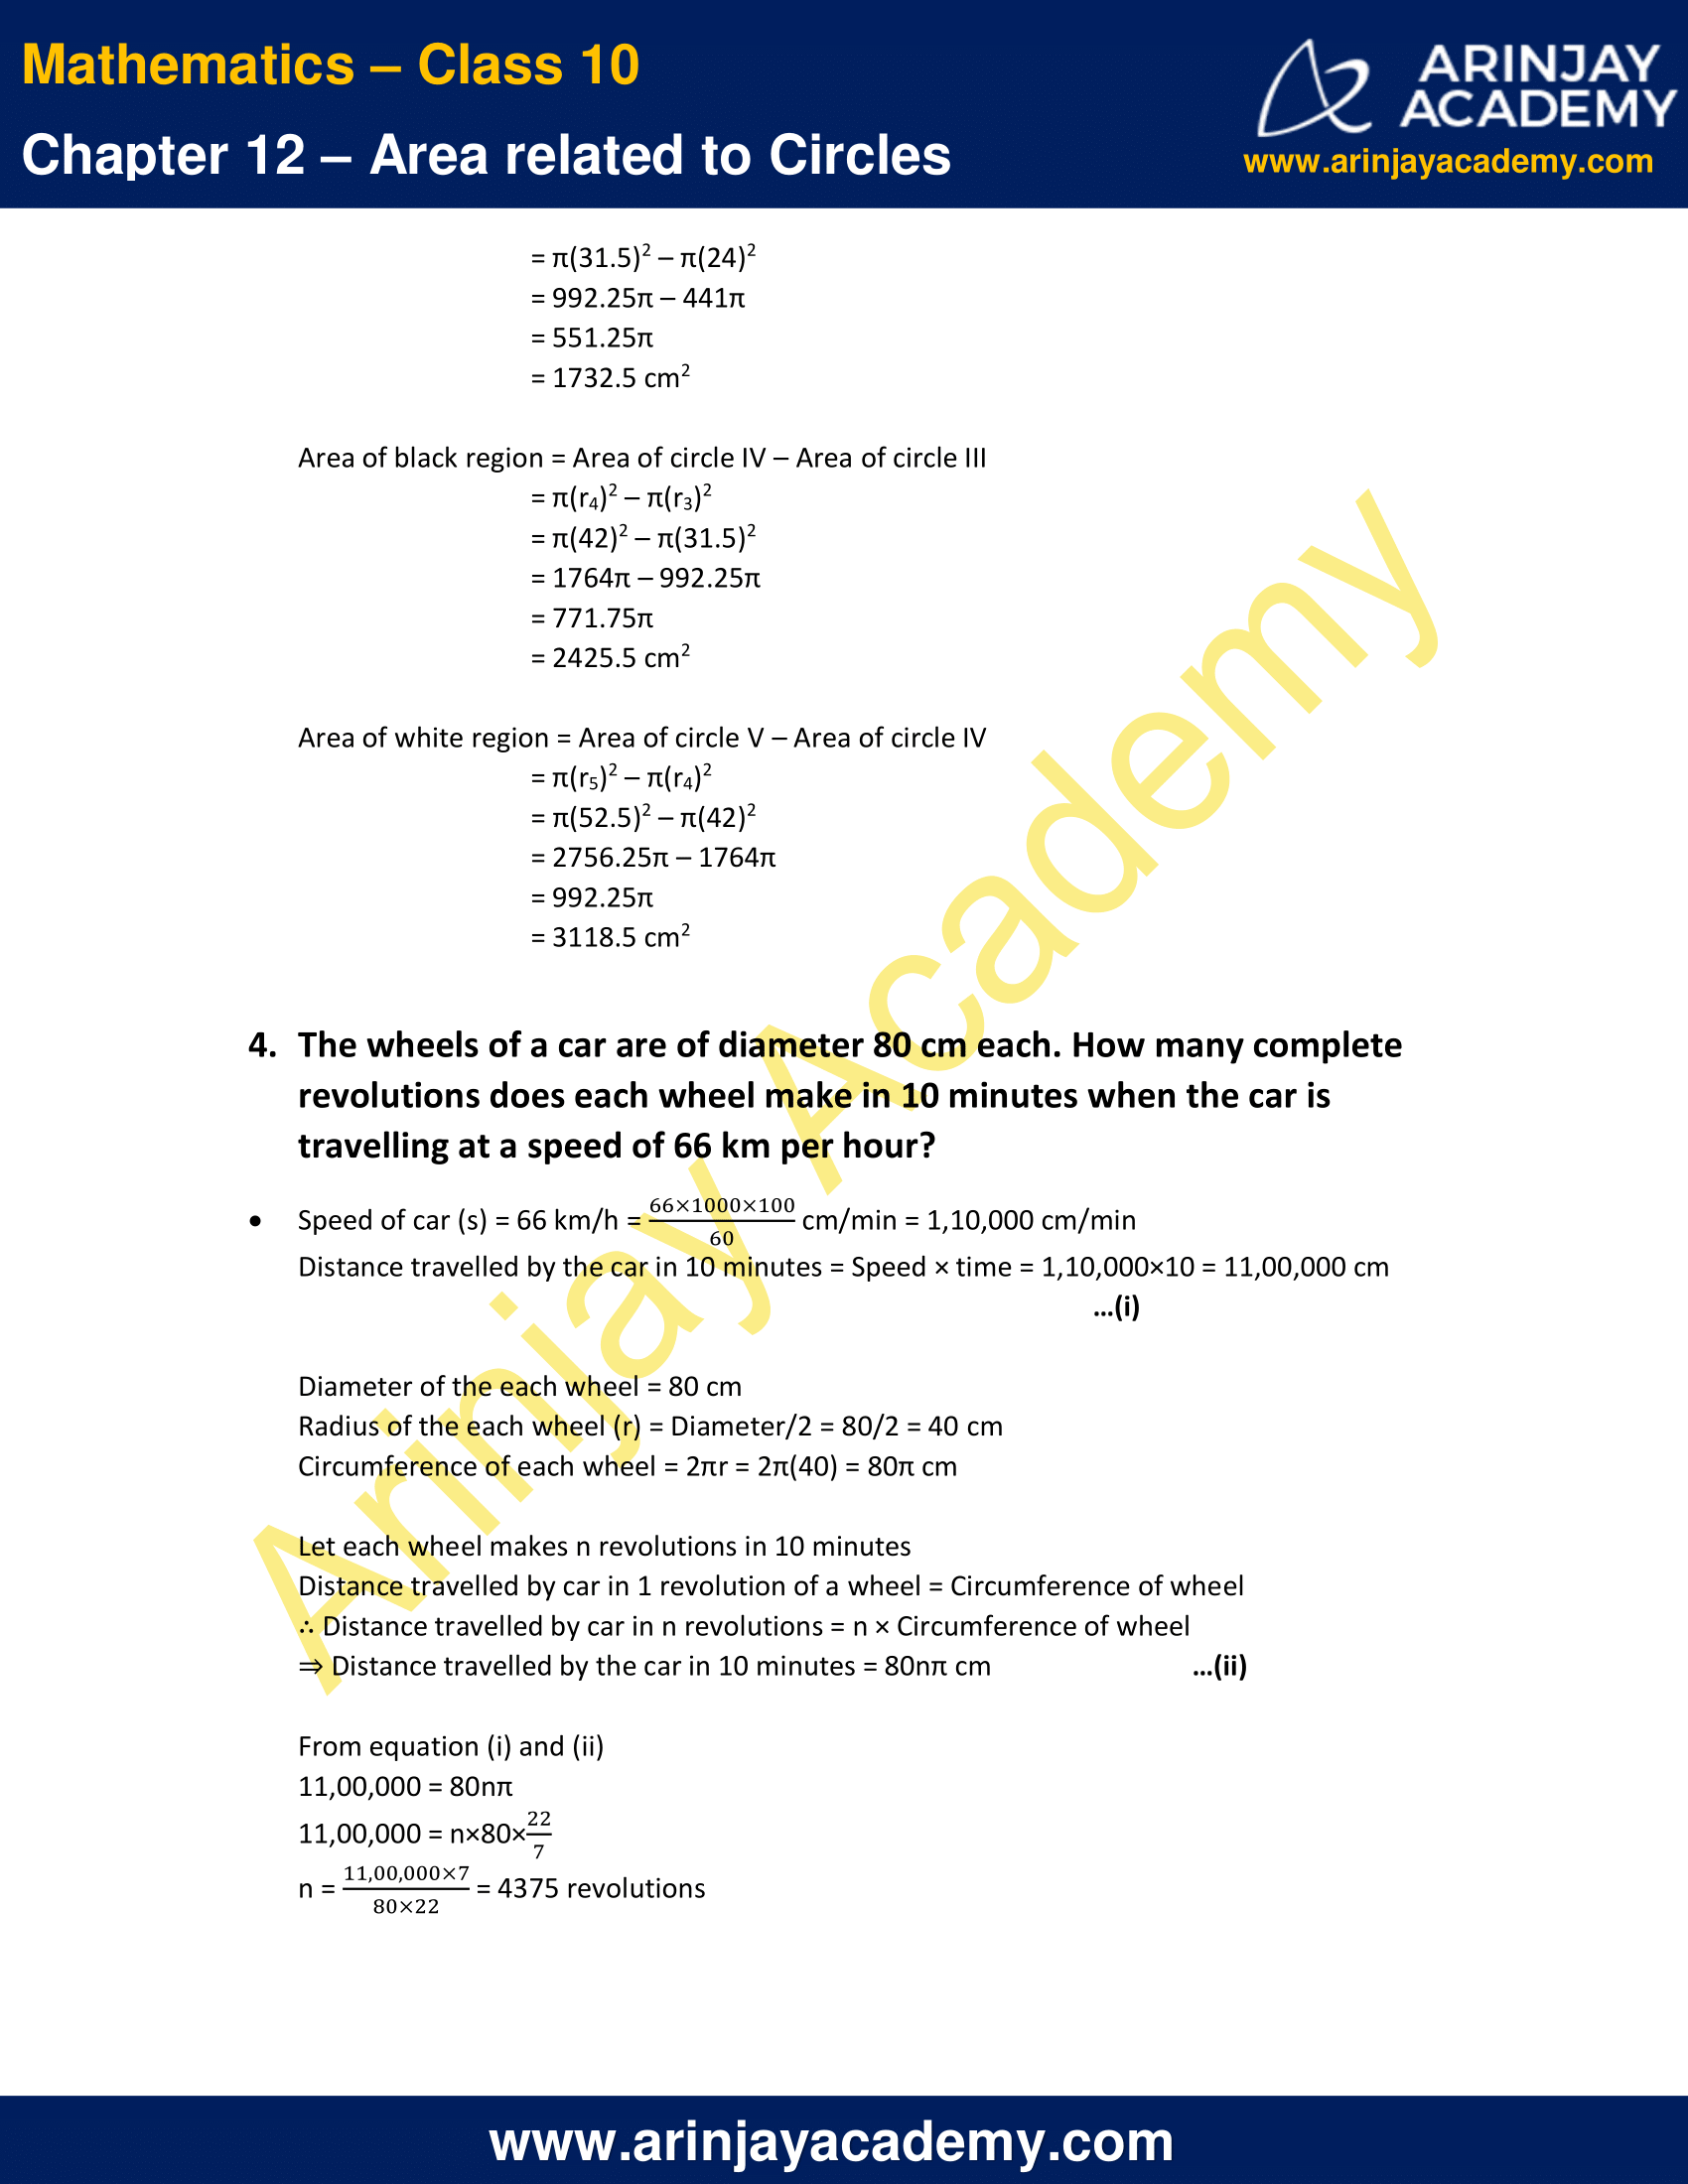 NCERT Solutions For Class 10 Maths Chapter 12 Exercise 12.1 image 3